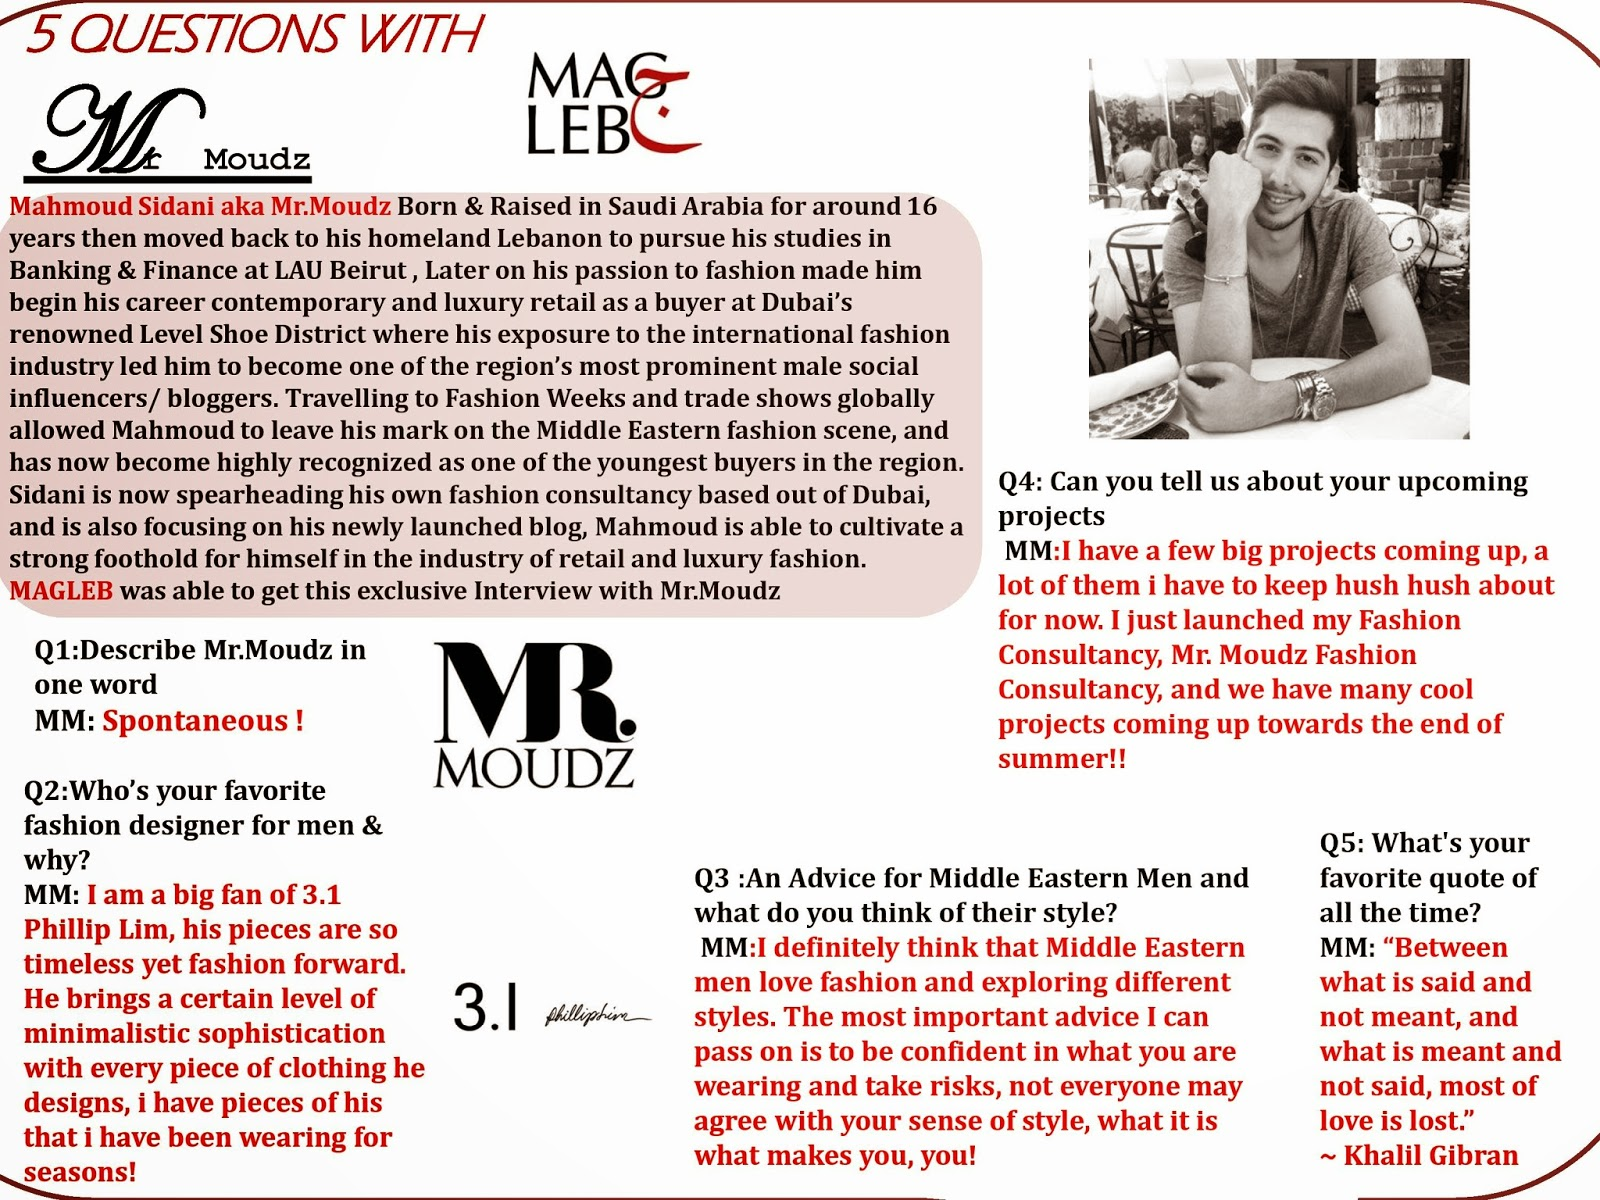 magleb five questions mr moudz to cultivate a strong foothold for himself in the industry of retail and luxury fashion magleb was able to get this exclusive interview mr moudz